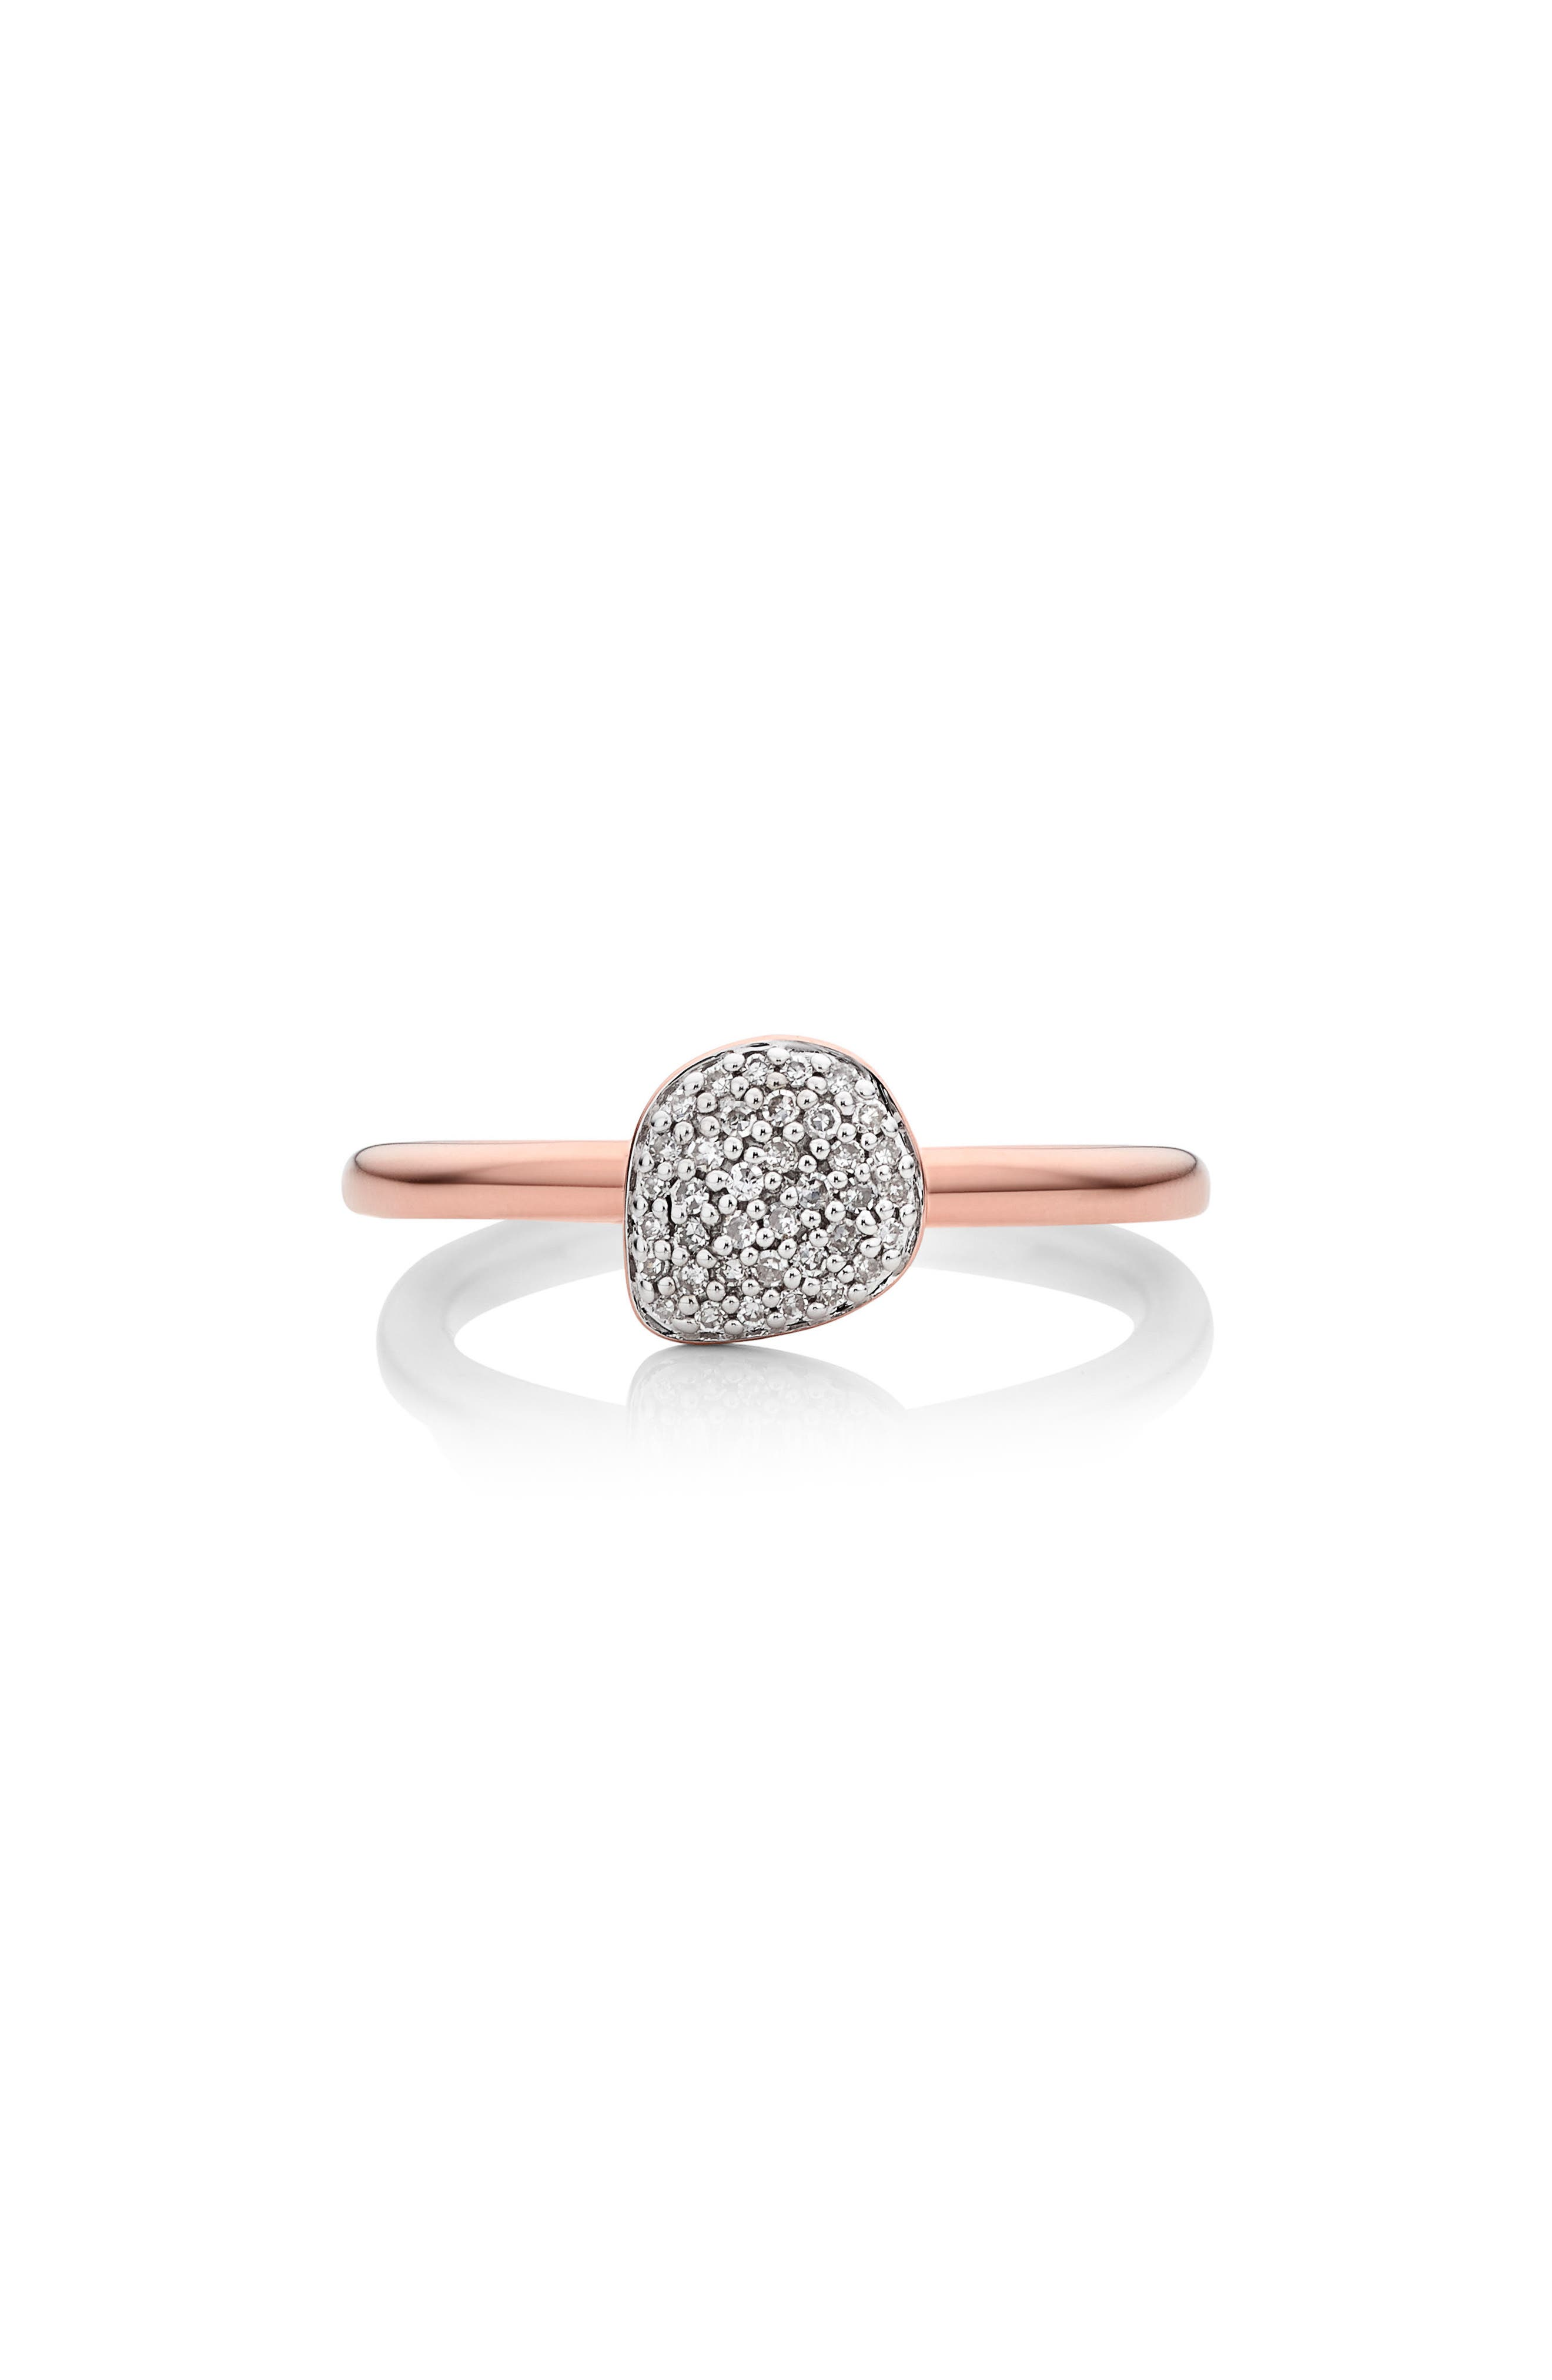 Nura Mini Diamond Pavé Pebble Stacking Ring,                         Main,                         color, ROSE GOLD/ DIAMOND